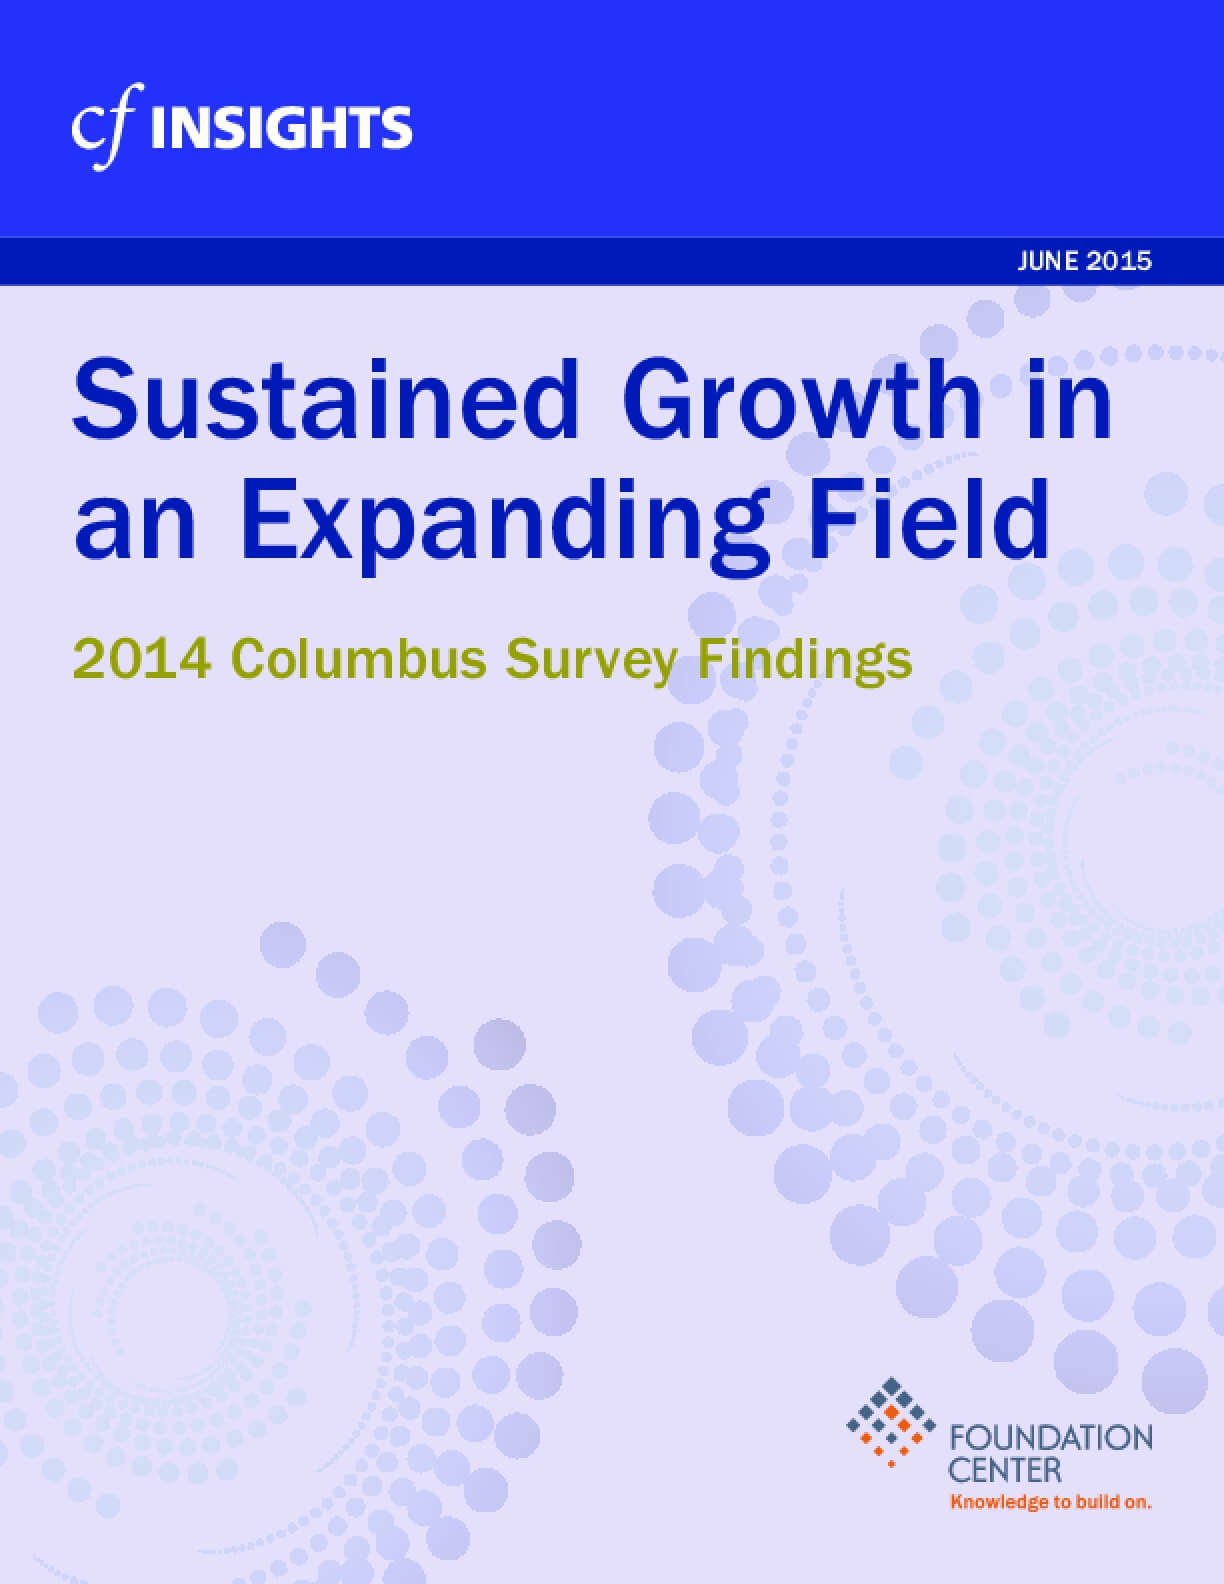 Sustained Growth in an Expanding Field 2014: Columbus Survey Findings